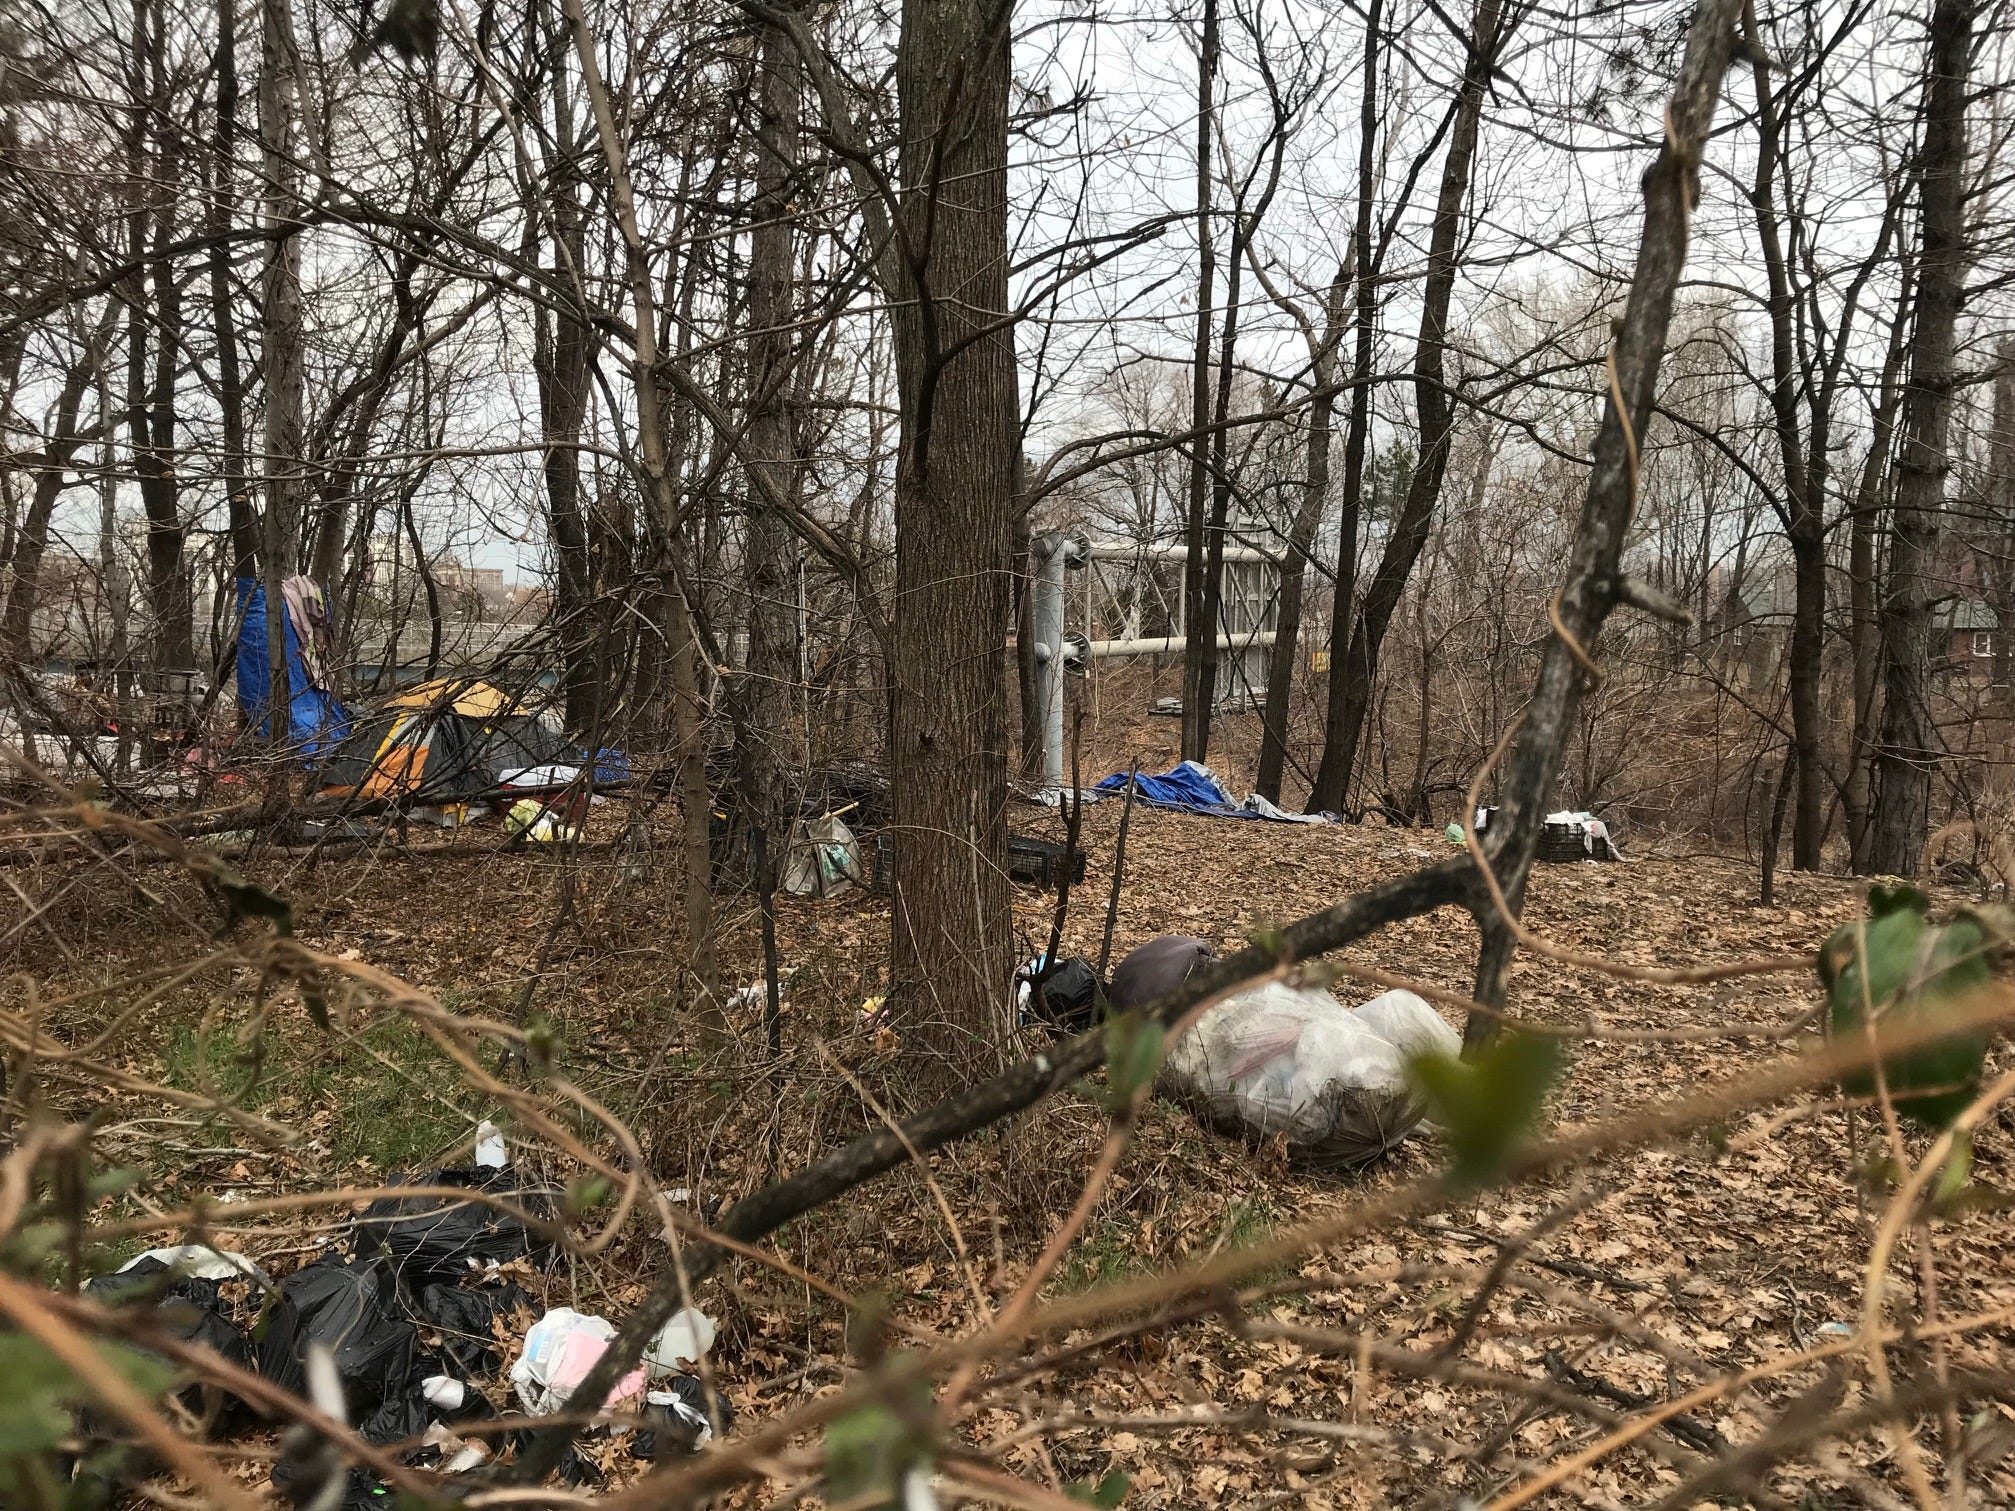 Another look at where homeless set up camp between Route 21 and Veteran's Par in Passaic.